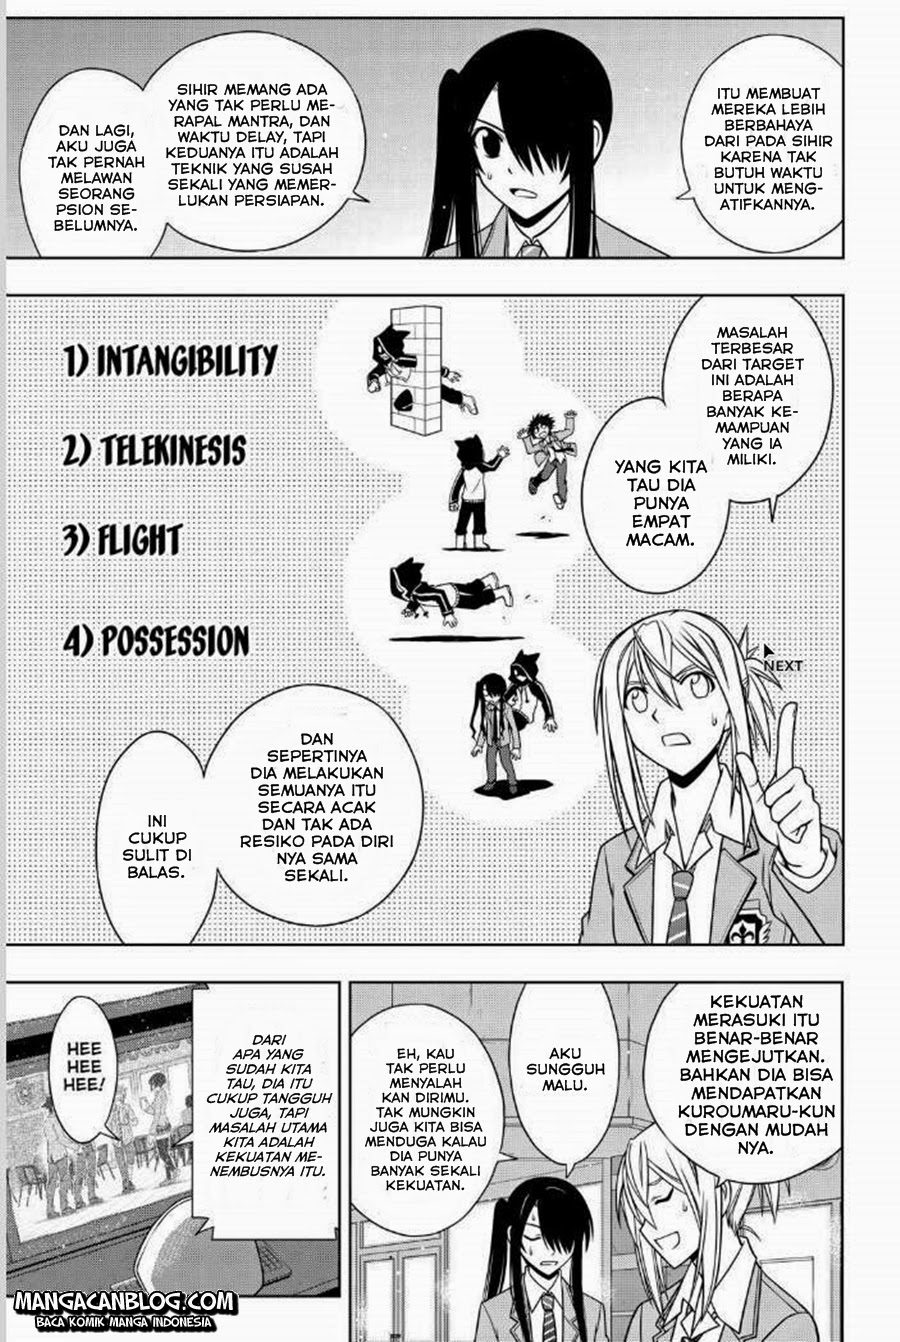 Komik uq holder 047 - psion vs immortal 48 Indonesia uq holder 047 - psion vs immortal Terbaru 13|Baca Manga Komik Indonesia